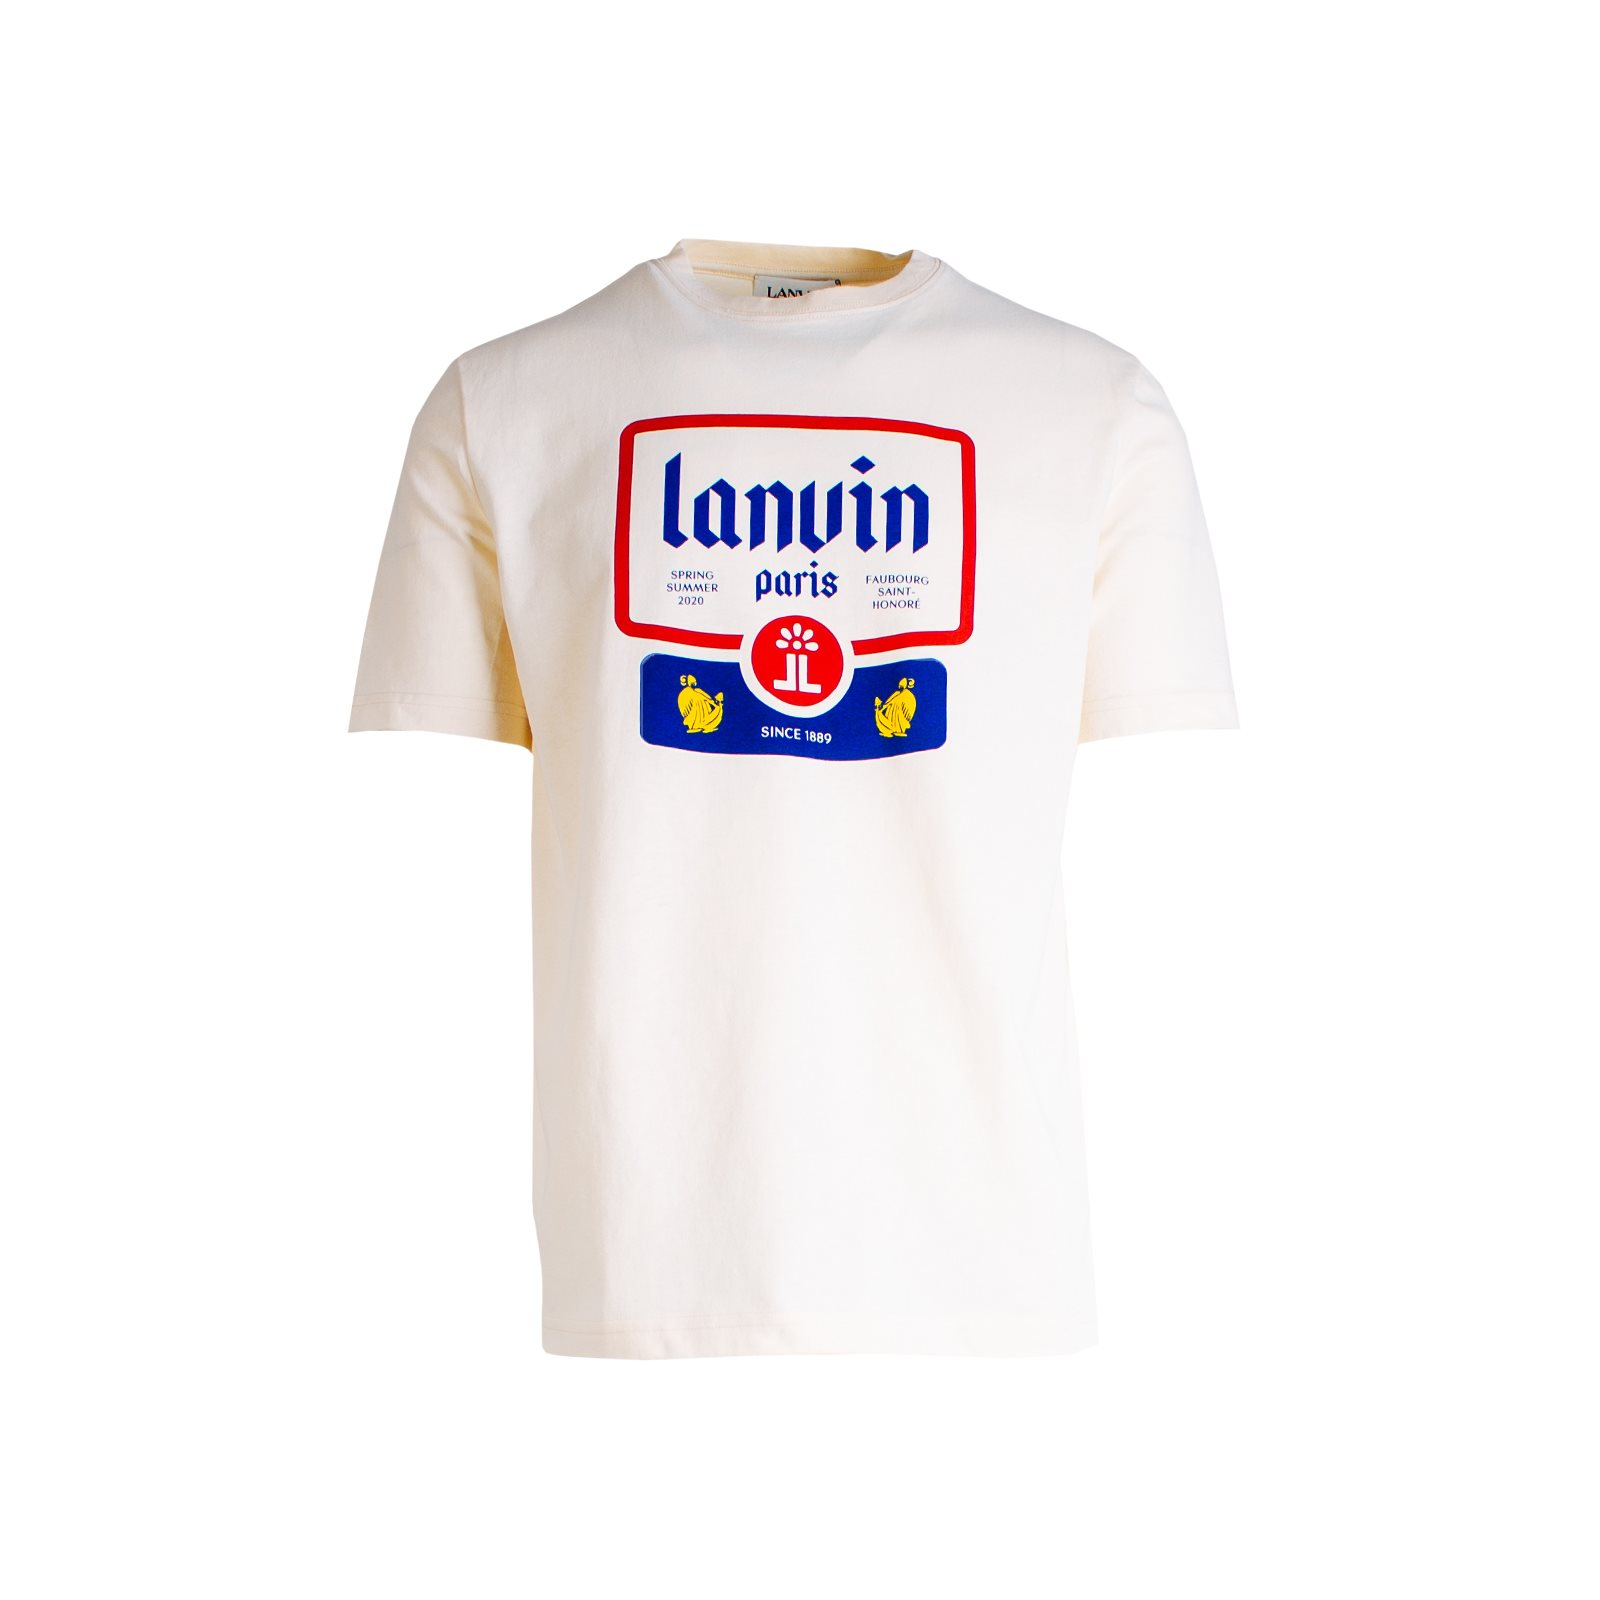 Lanvin Paris T-shirt